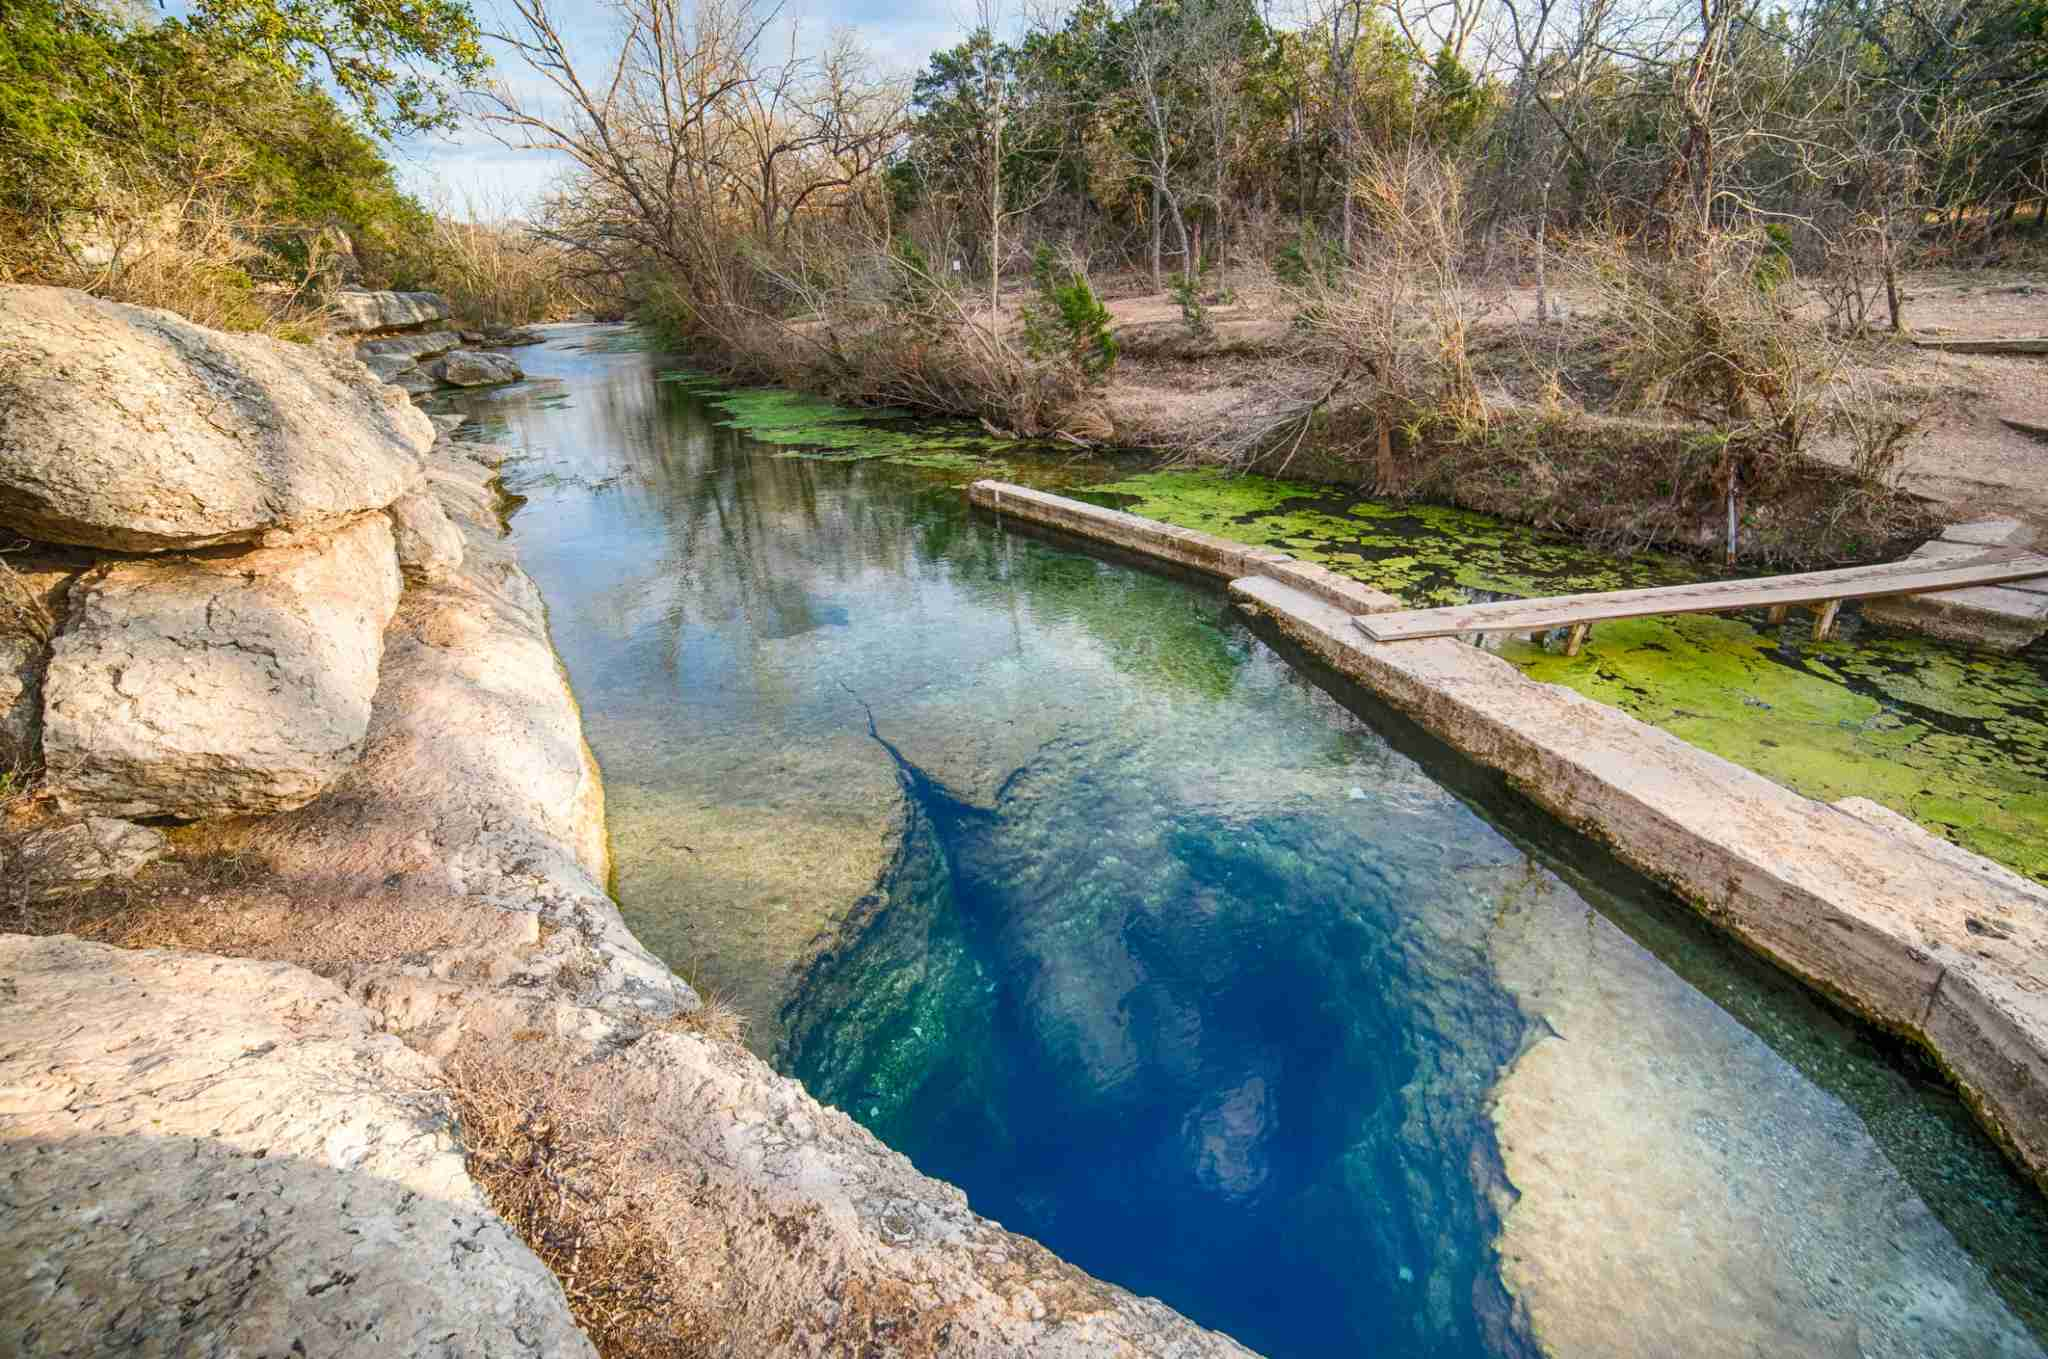 Jacobs Well in the Texas Hill Country (Photo by Wells/Getty Images)